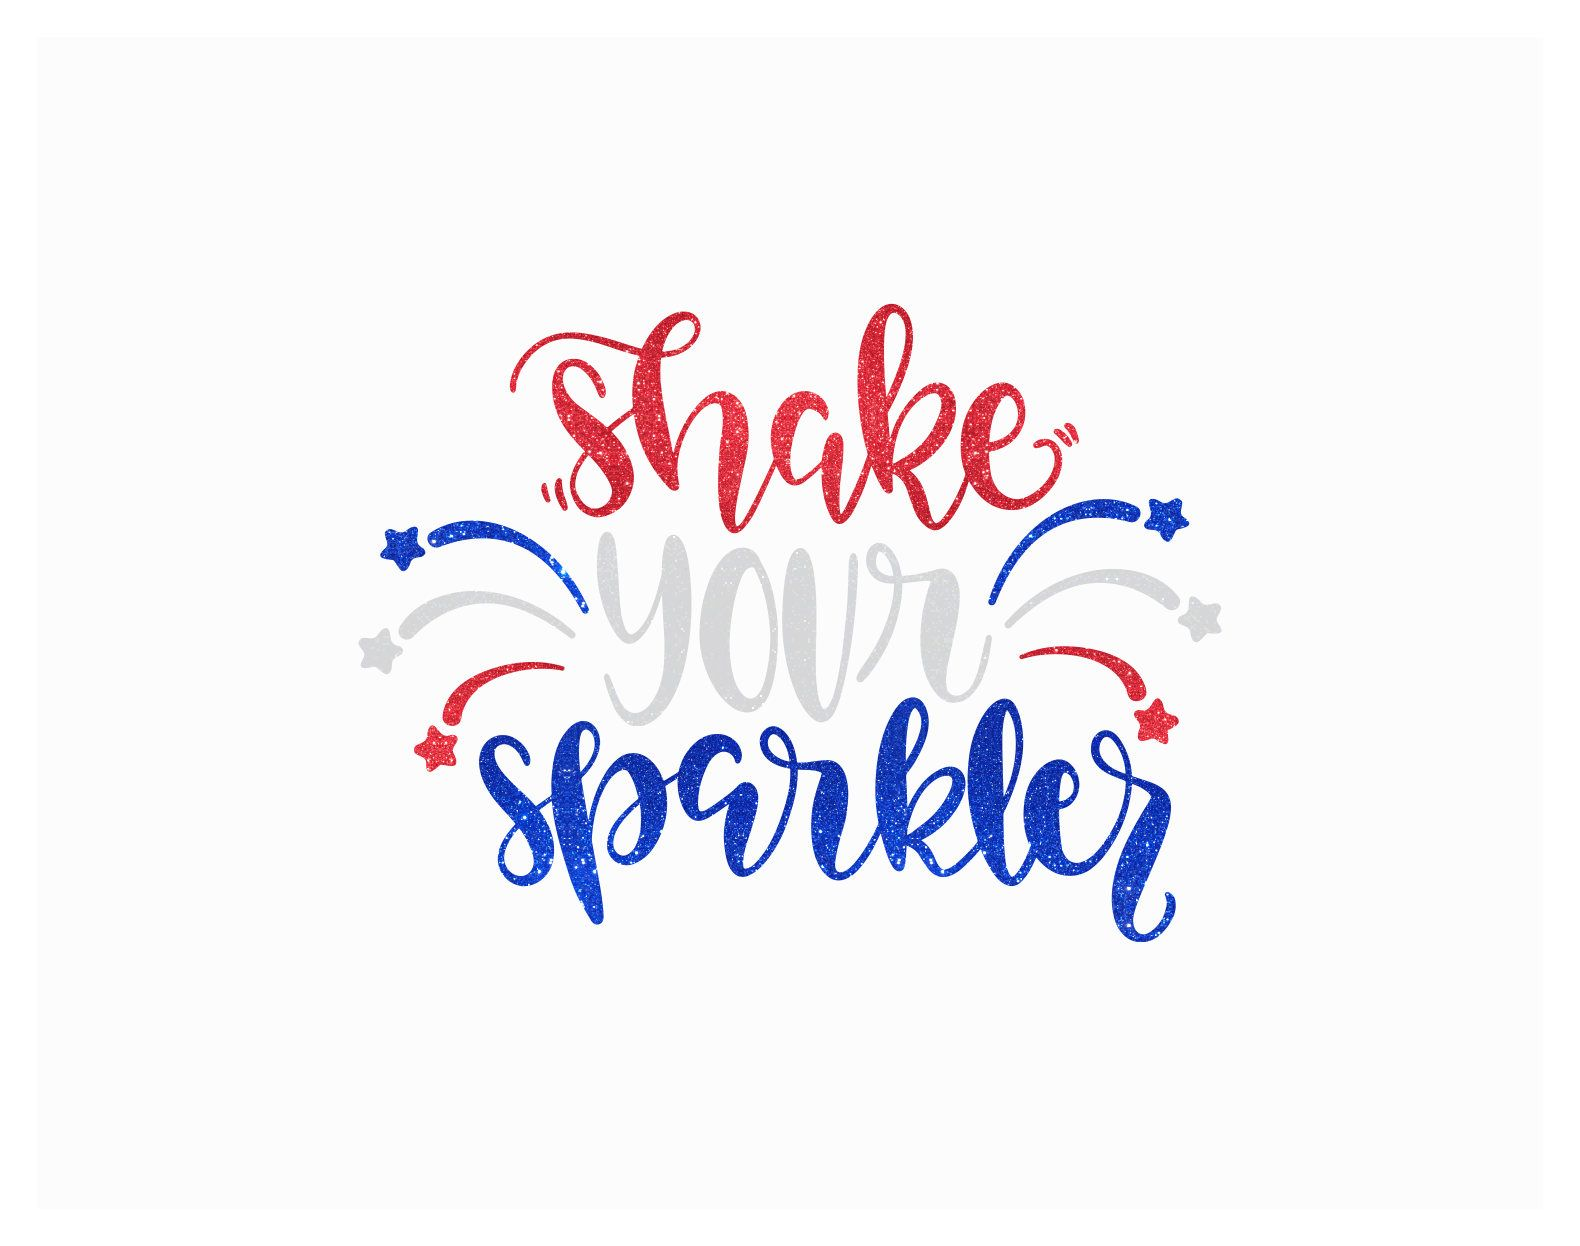 Custom Shake Your Sparkler Fireworks Solid Or Glitter Iron On Heat - Glitter custom vinyl decals for shirts